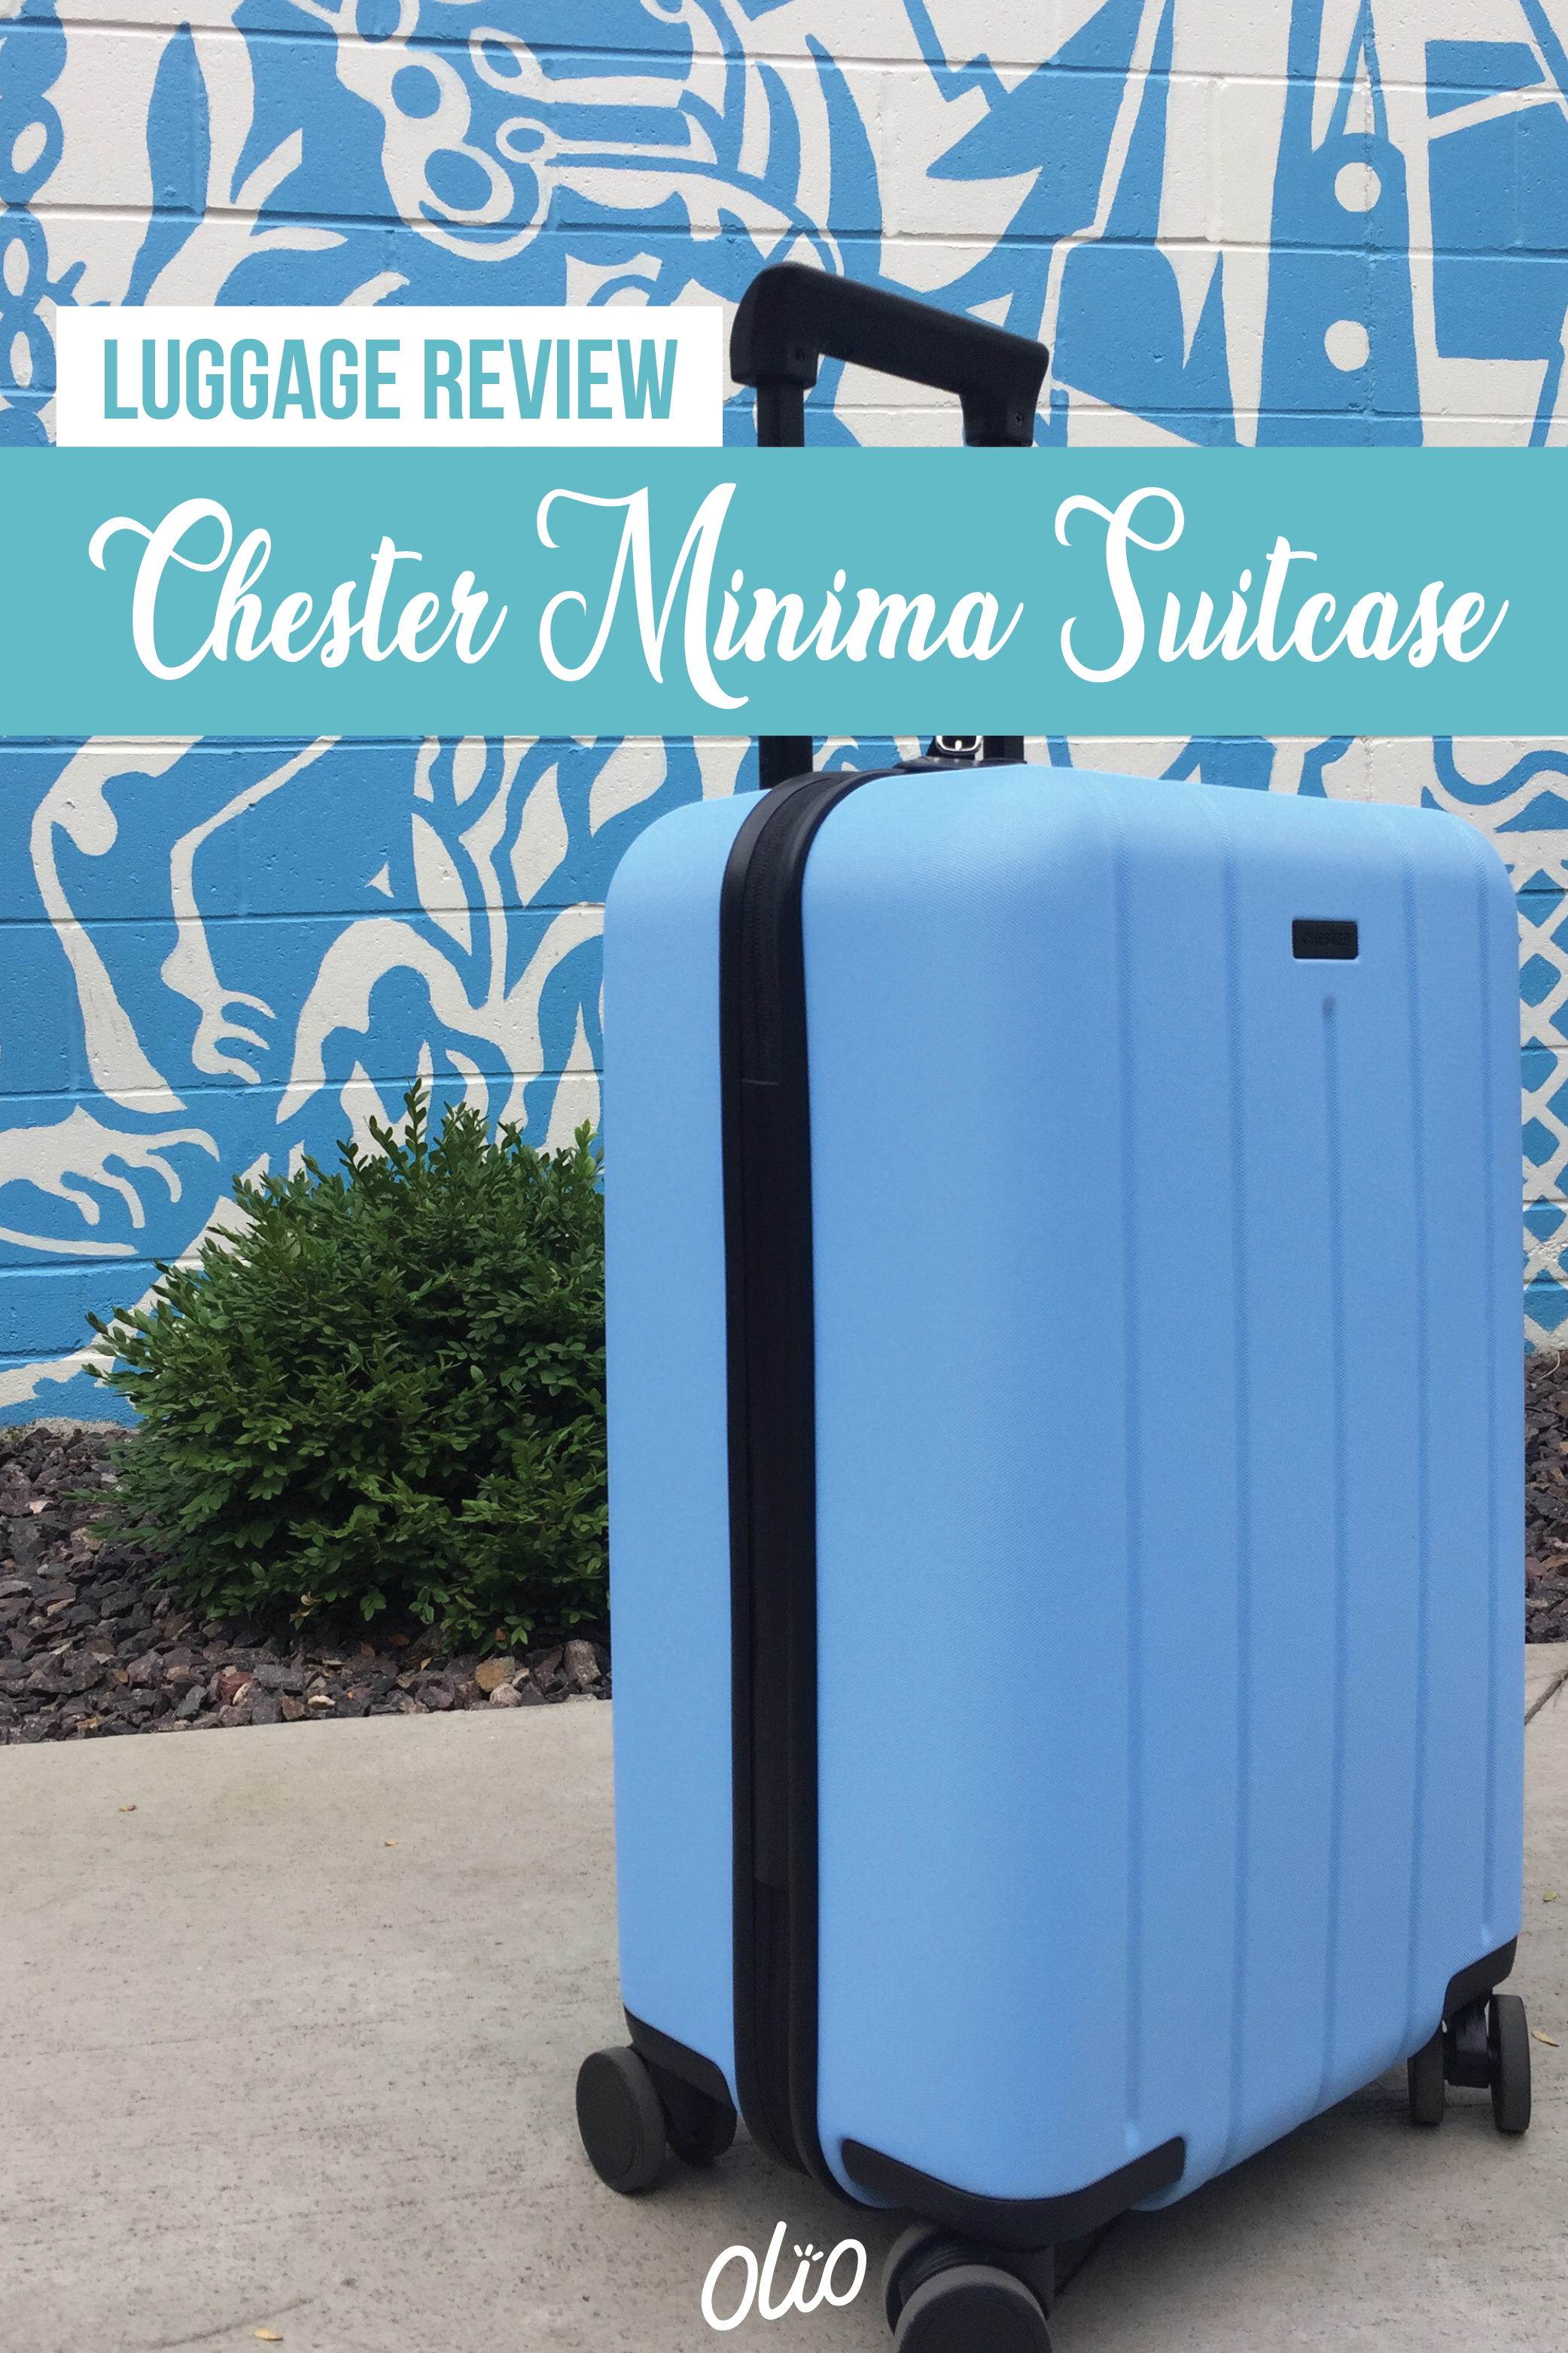 Looking for a new carry-on? Look no further than the Chester Minima Carry-on Spinner Suitcase! Not only does this compact bag come in a variety of stylish colors, but it is also thoughtfully designed so you can make the most out of your packing space. Spend less time rifling through your bag and more time enjoying your next trip vacation when you travel with Chester!